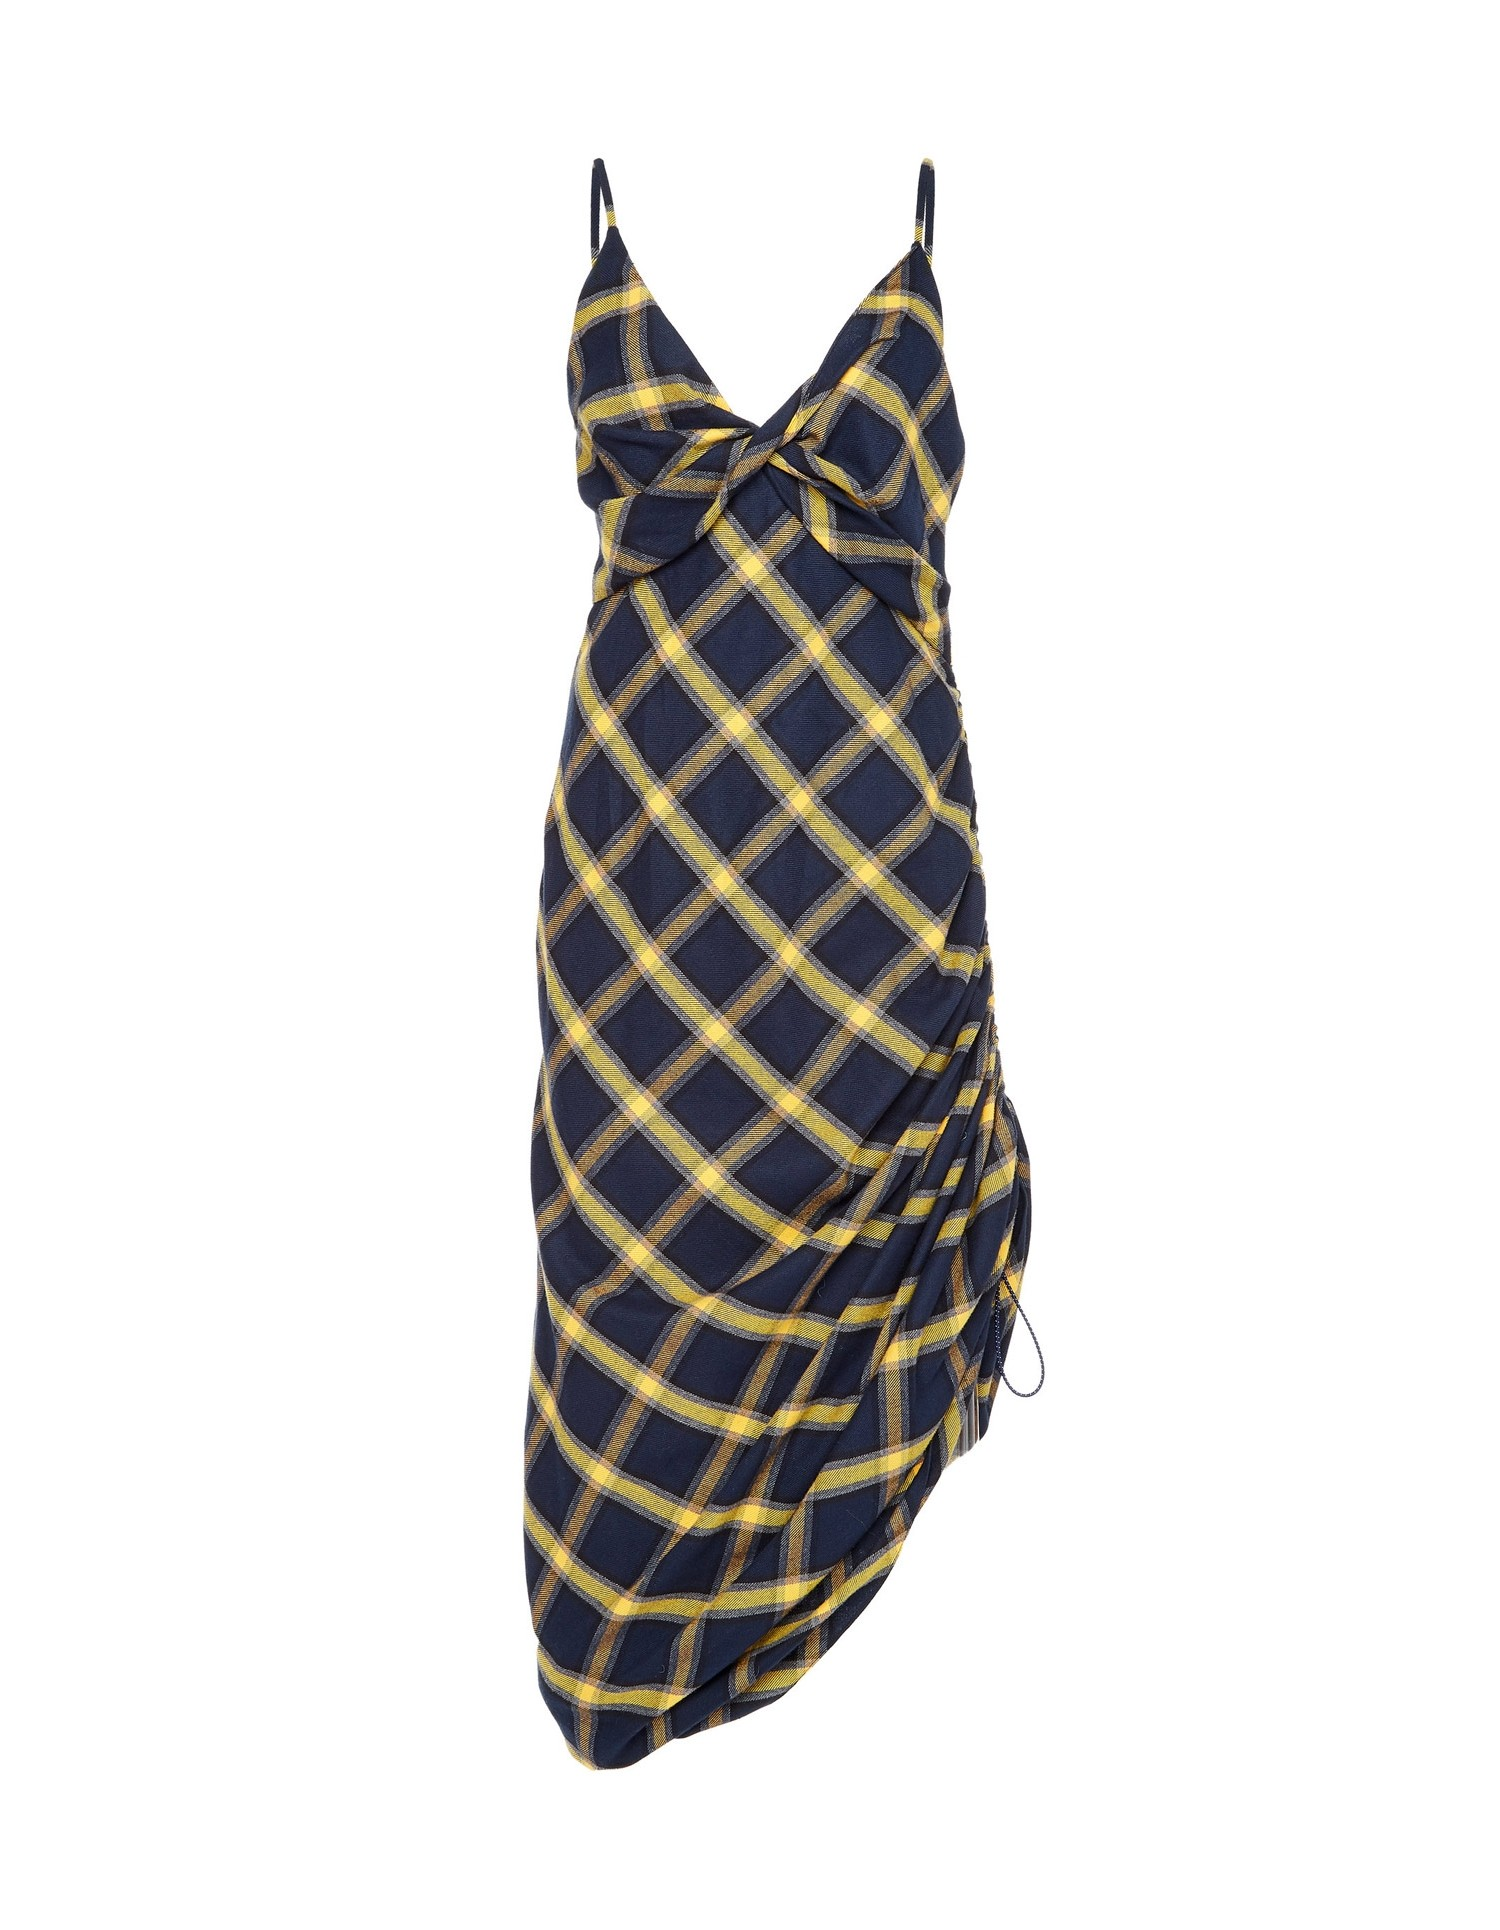 MONSE Twisted Plaid Slip Dress in Midnight and Yellow Flat Front